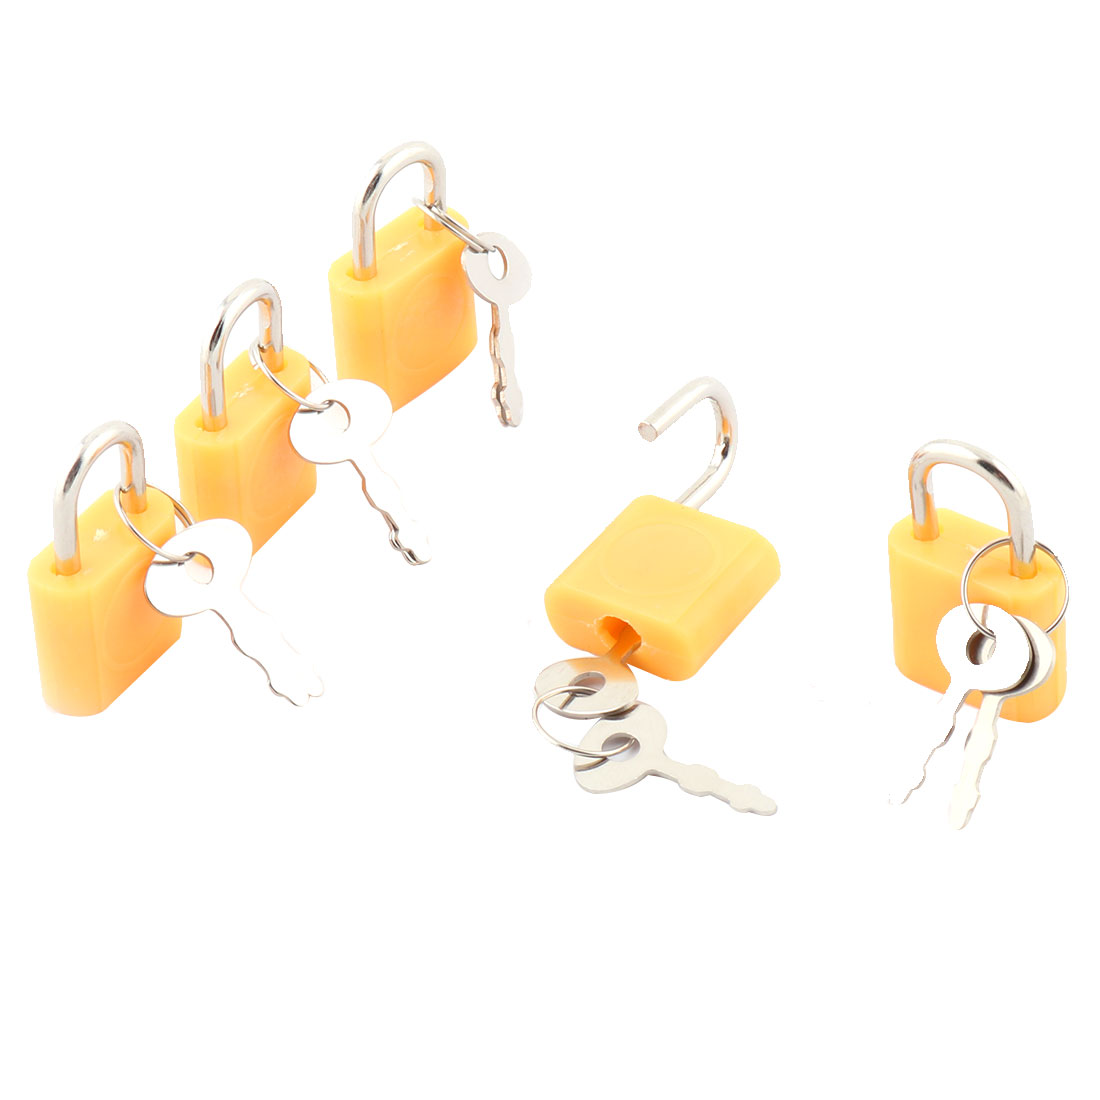 Household Cabinet Suitcase Metal Shackle Security Protector Padlock Lock Orange 5pcs